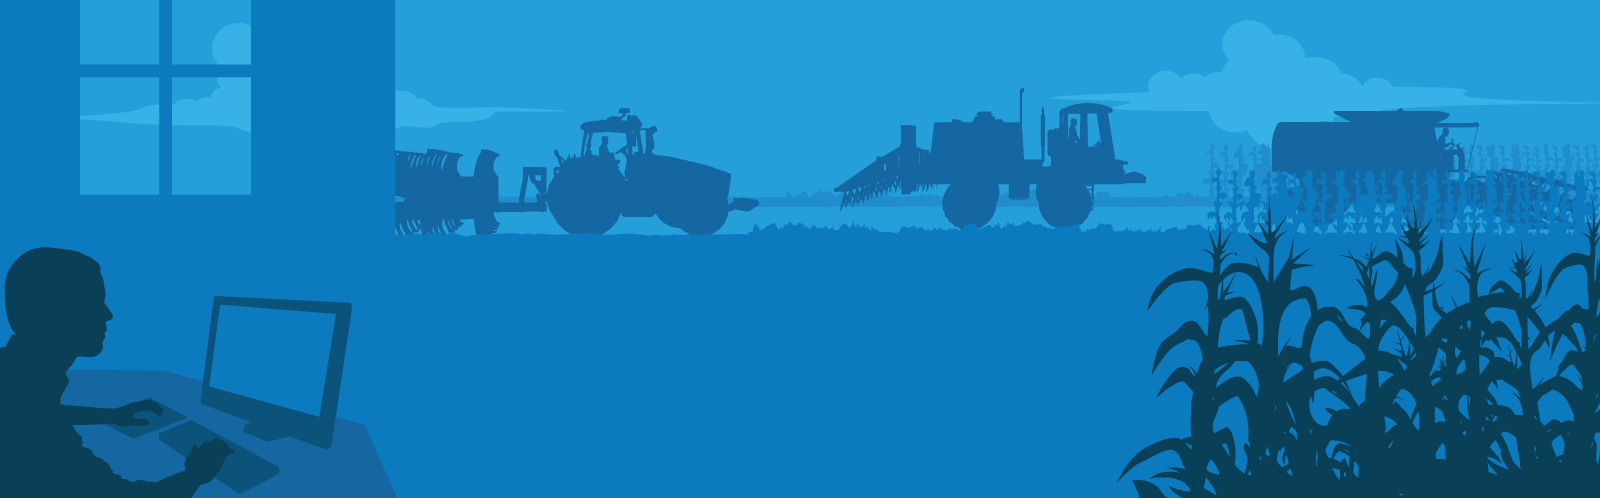 Precision Agriculture | Topcon Positioning Systems, Inc